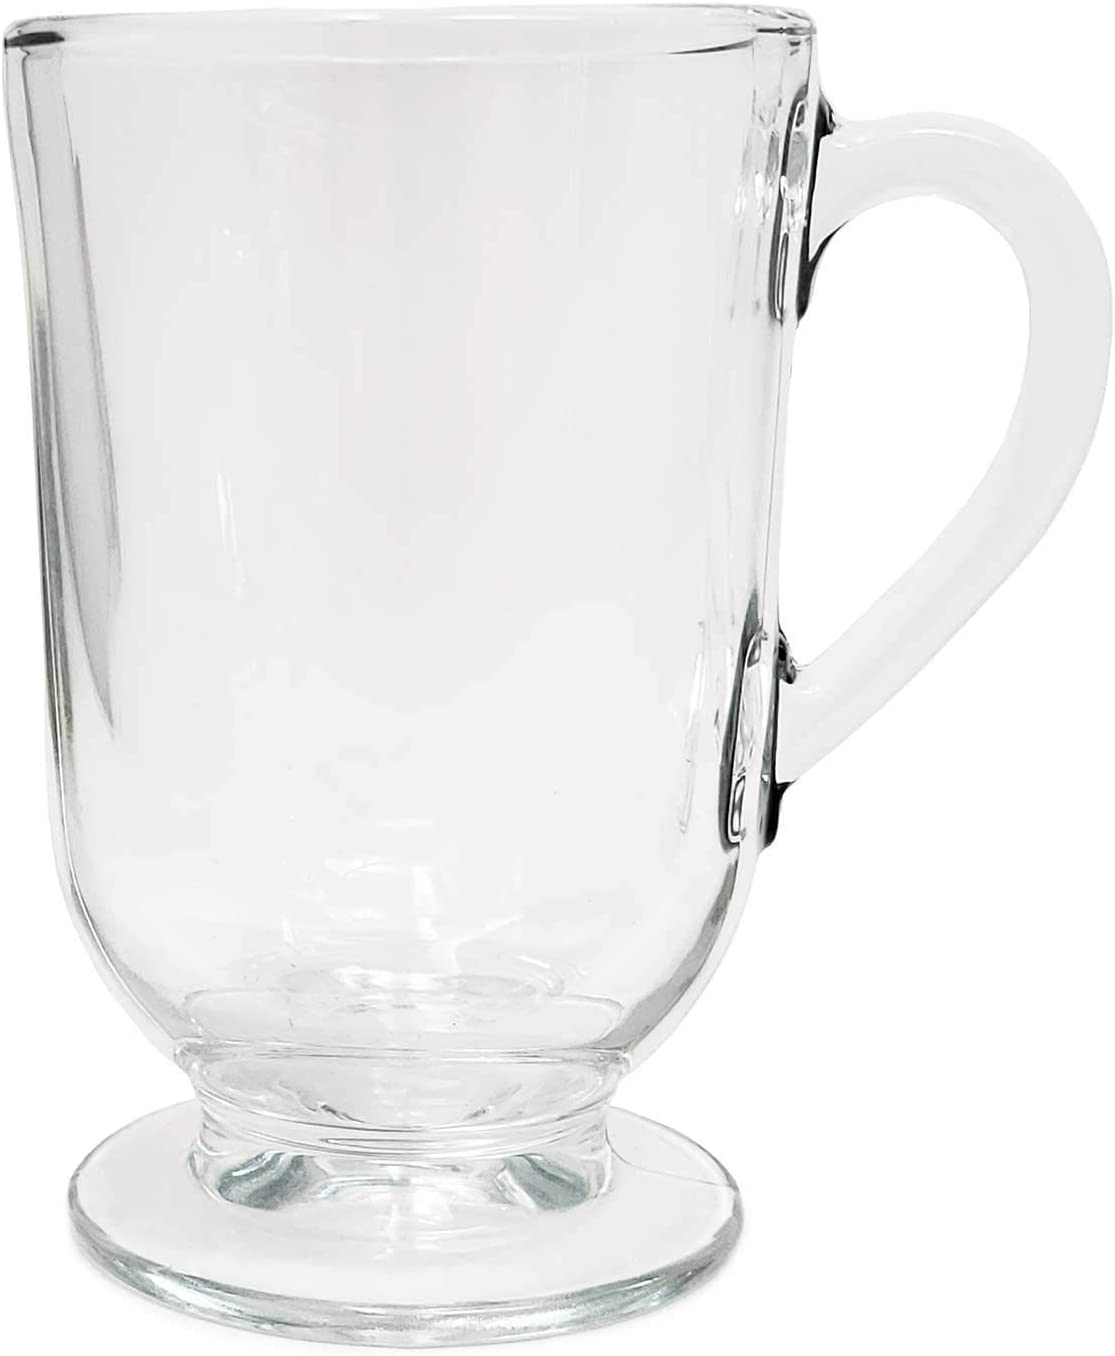 Set of 12 Irish Coffee Glass Mugs oz.Thick Wall Max 49% OFF Footed 10.5 Product Glas